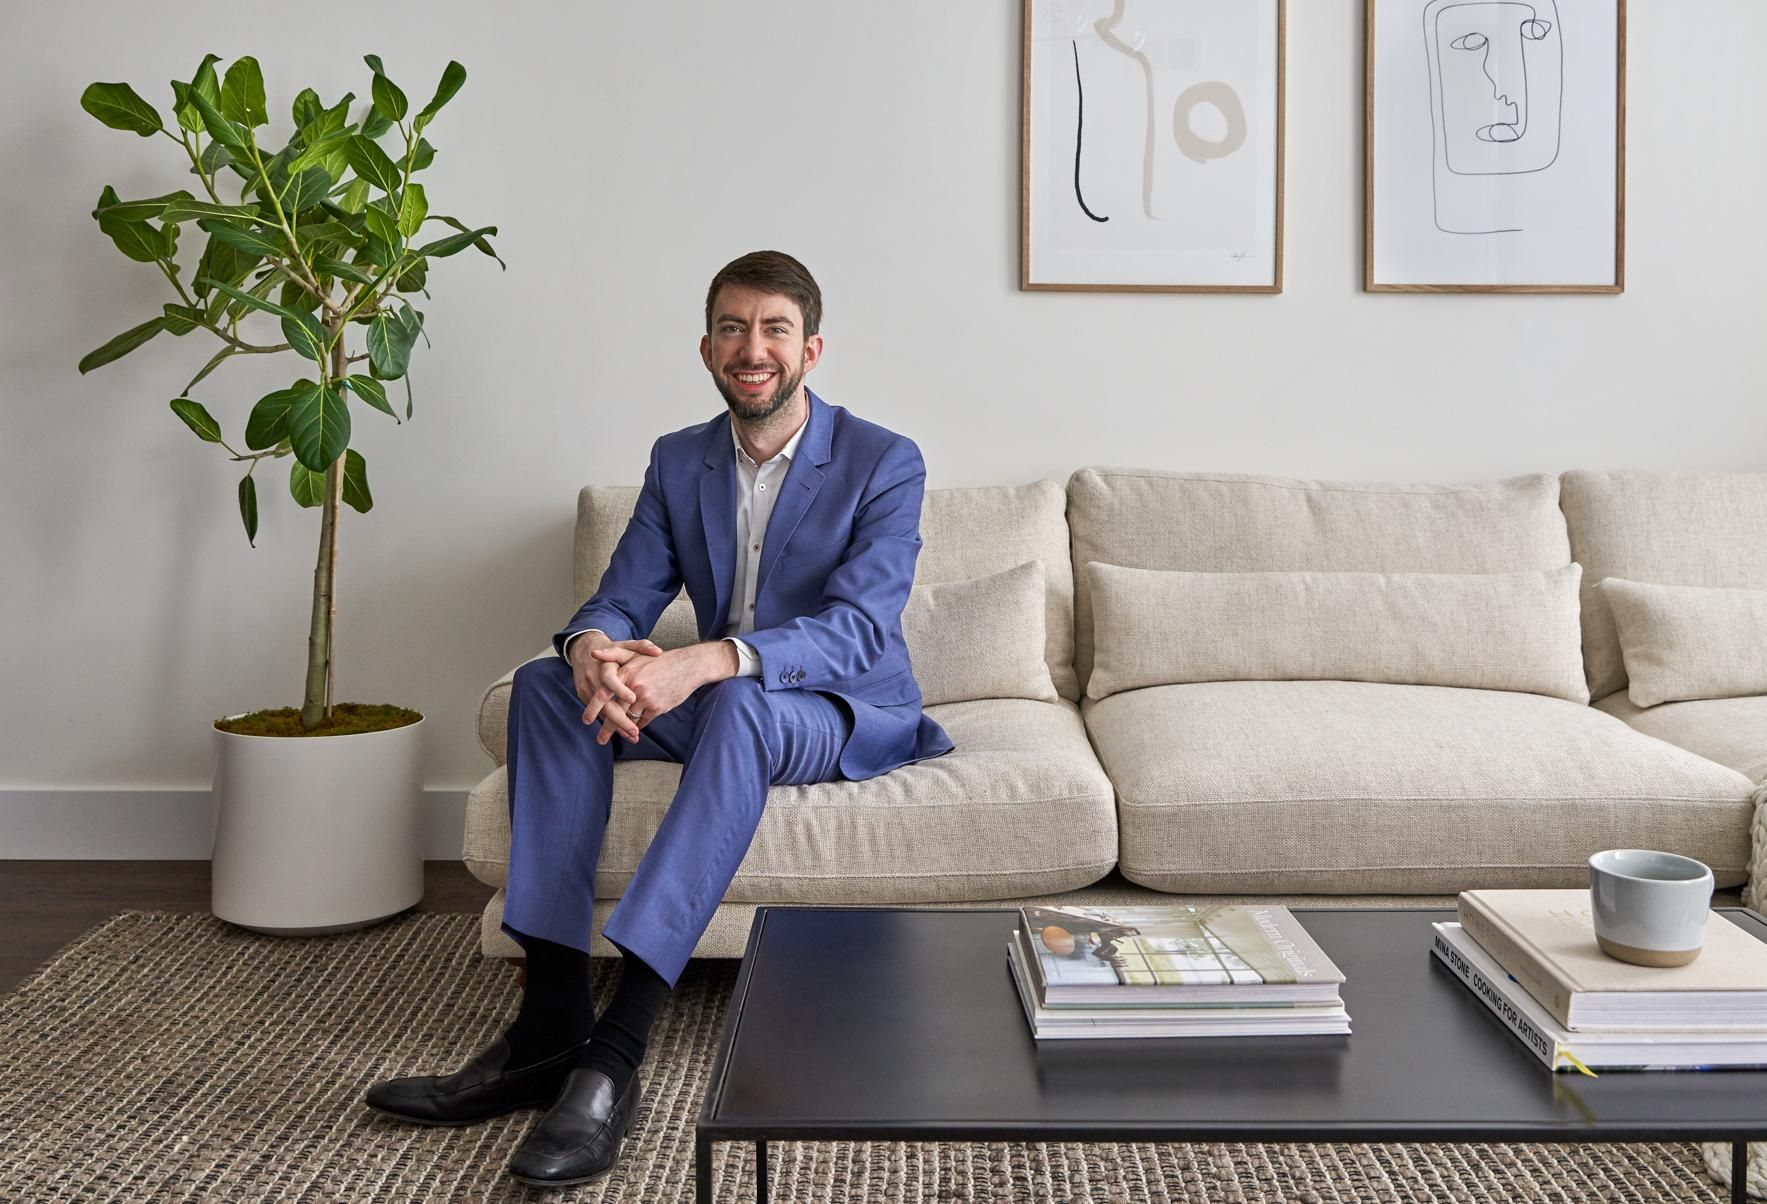 BONUS PODCAST: Listen To Bisnow's 'Let's Have A Drink' With Common CEO Brad Hargreaves